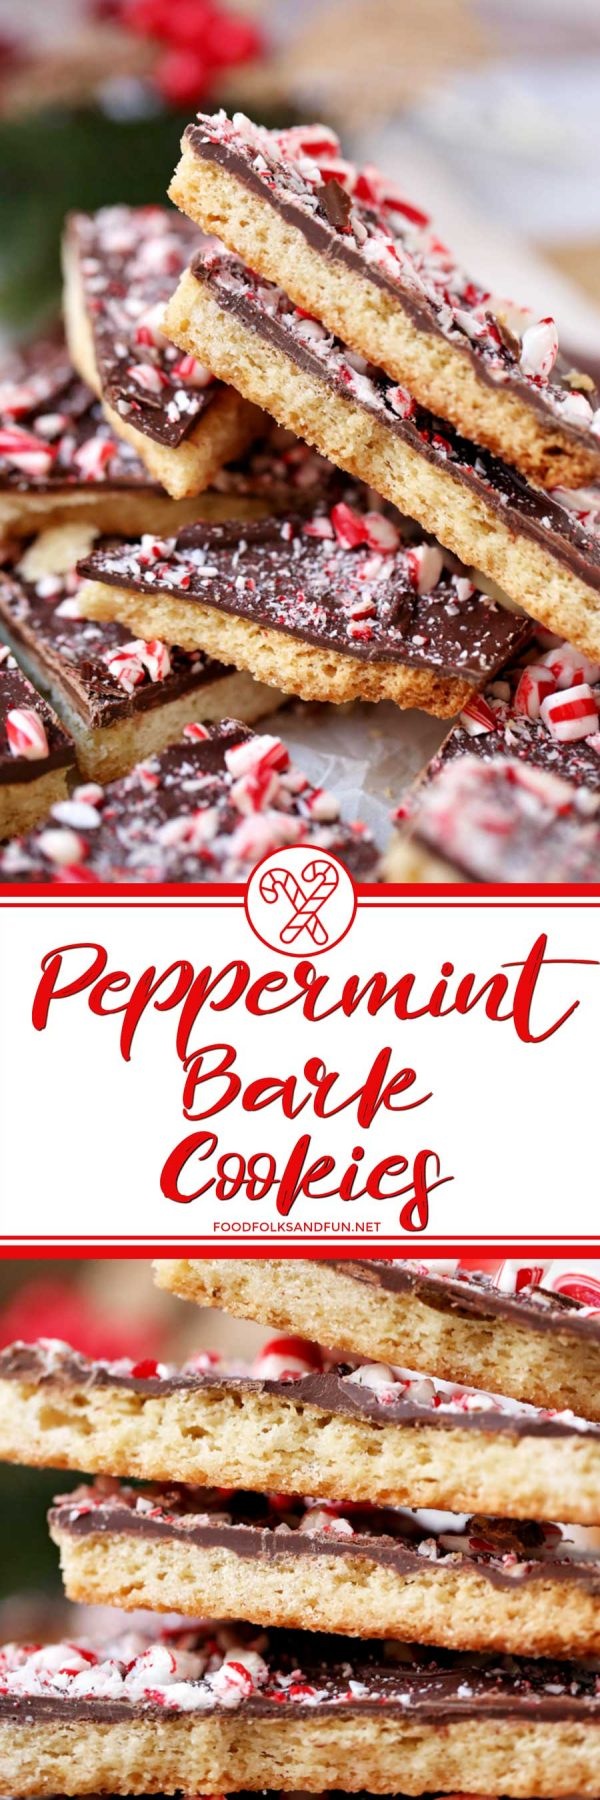 Shortbread Peppermint Bark Cookies